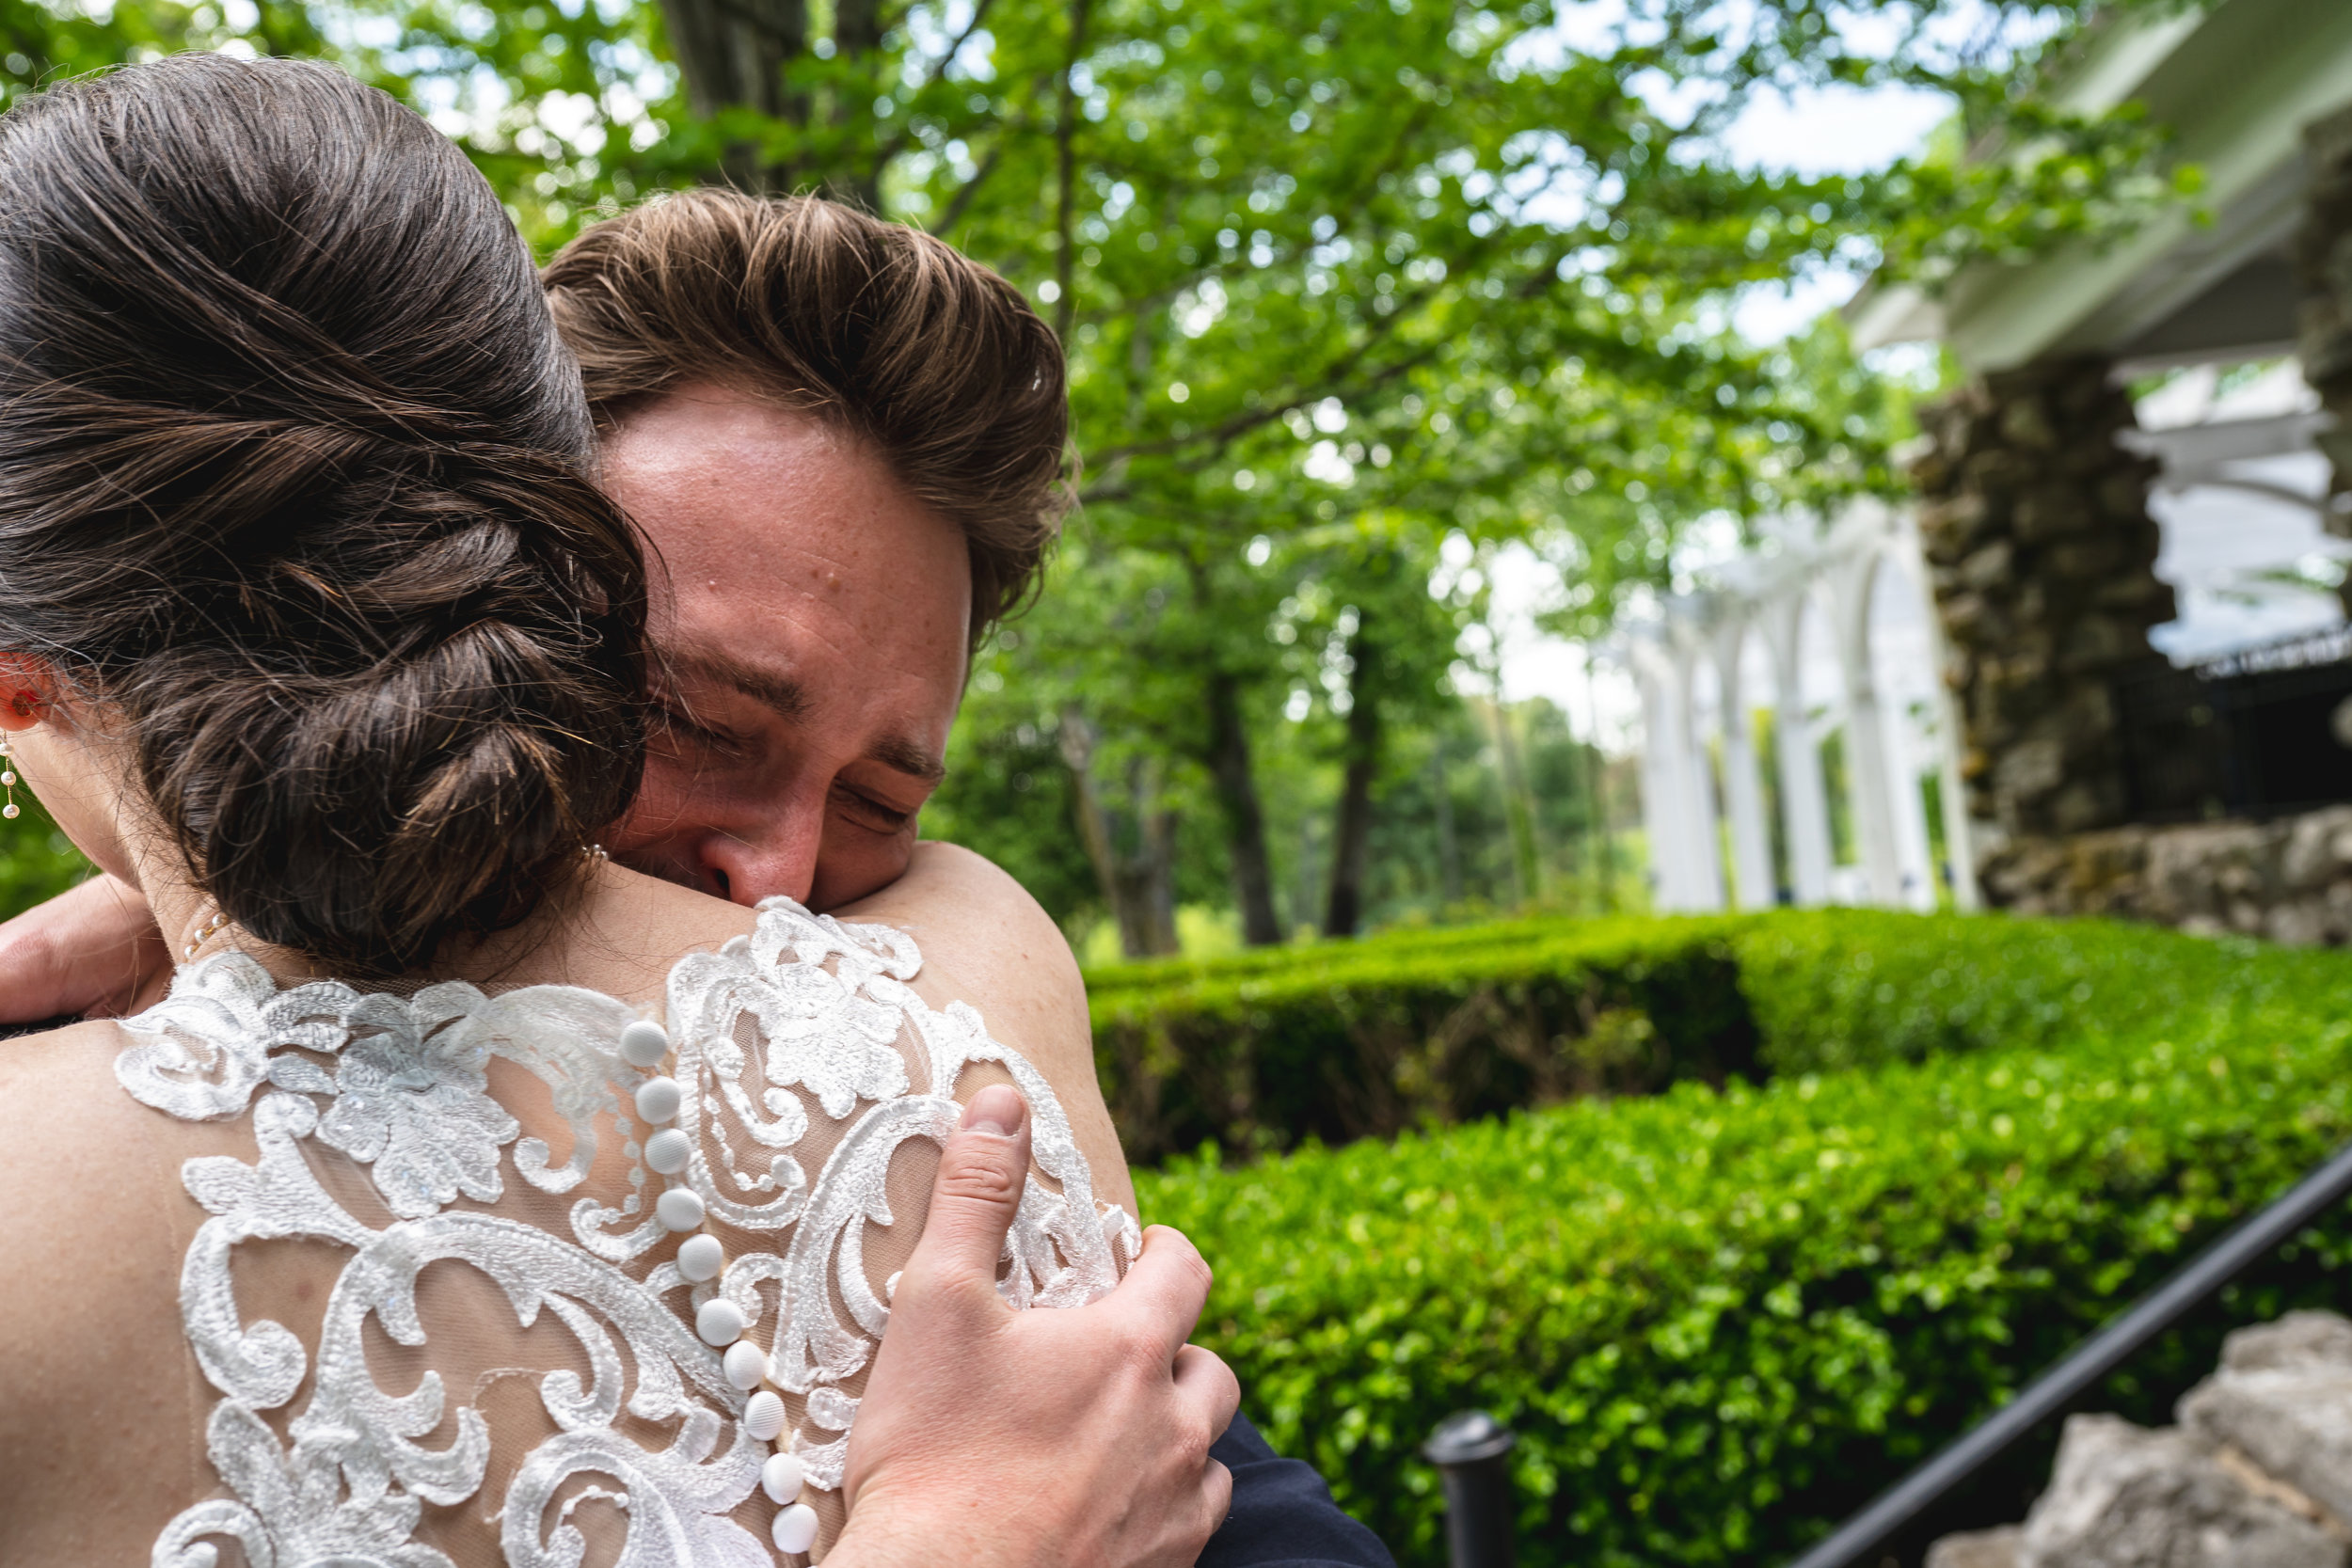 This emotional first look between the couple was a special moment on their intentional wedding day. This first look was coordinated by the talented photographer and creative wedding planner at Haseltine Estate in Springfield, Missouri.